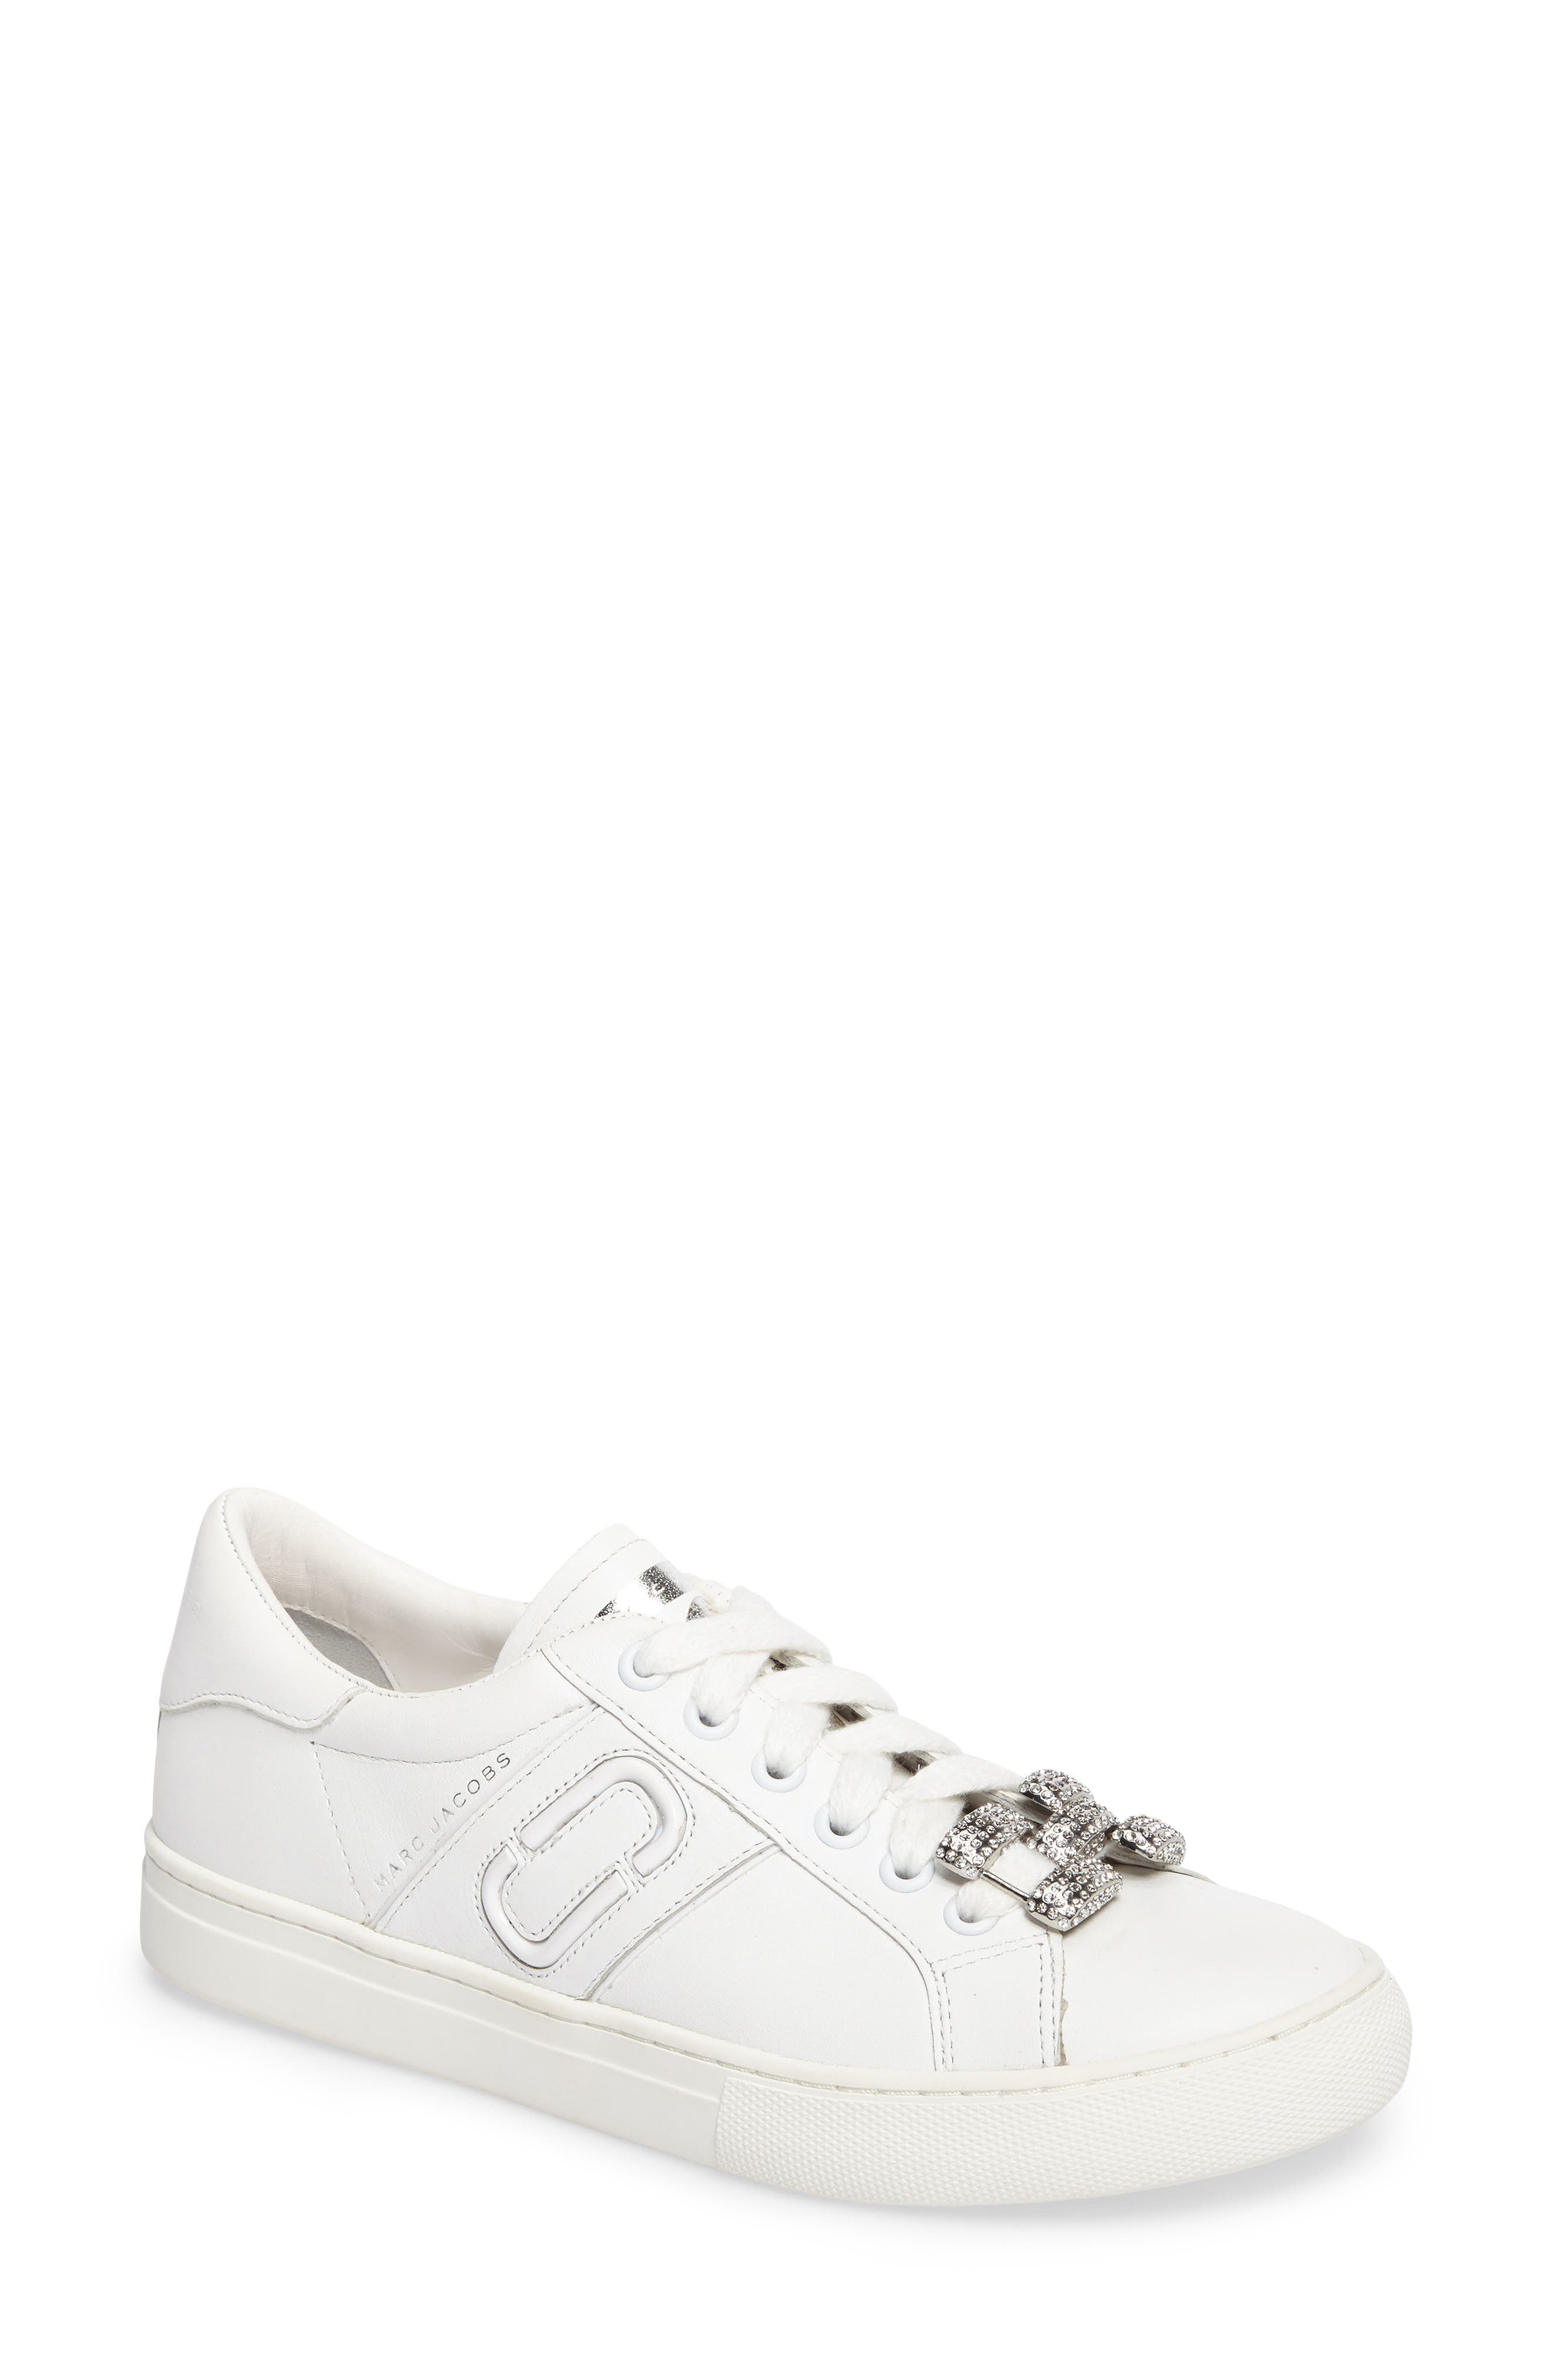 Alternate Image 1 Selected - MARC JACOBS Empire Chain Link Sneaker (Women)